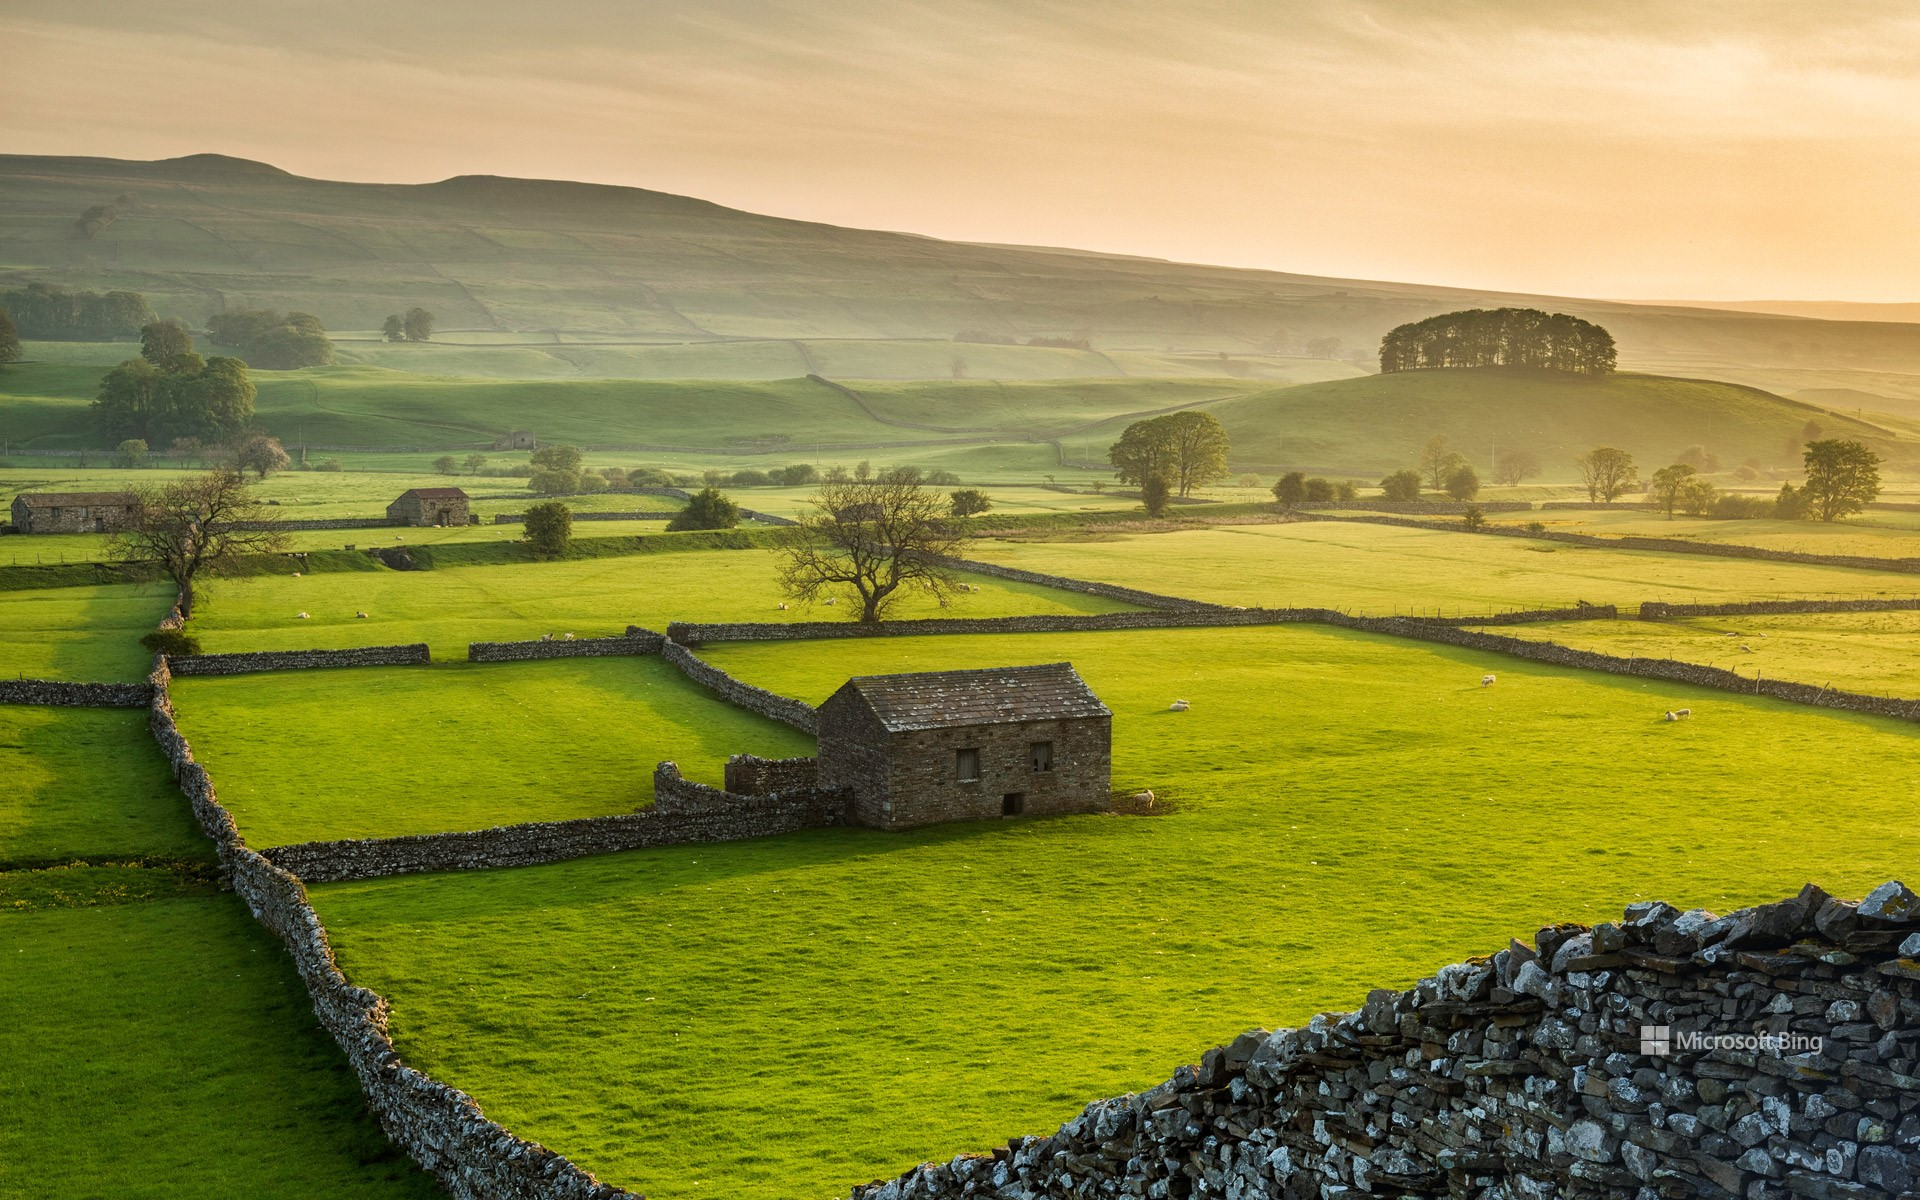 Wensleydale, Yorkshire Dales National Park, North Yorkshire, England